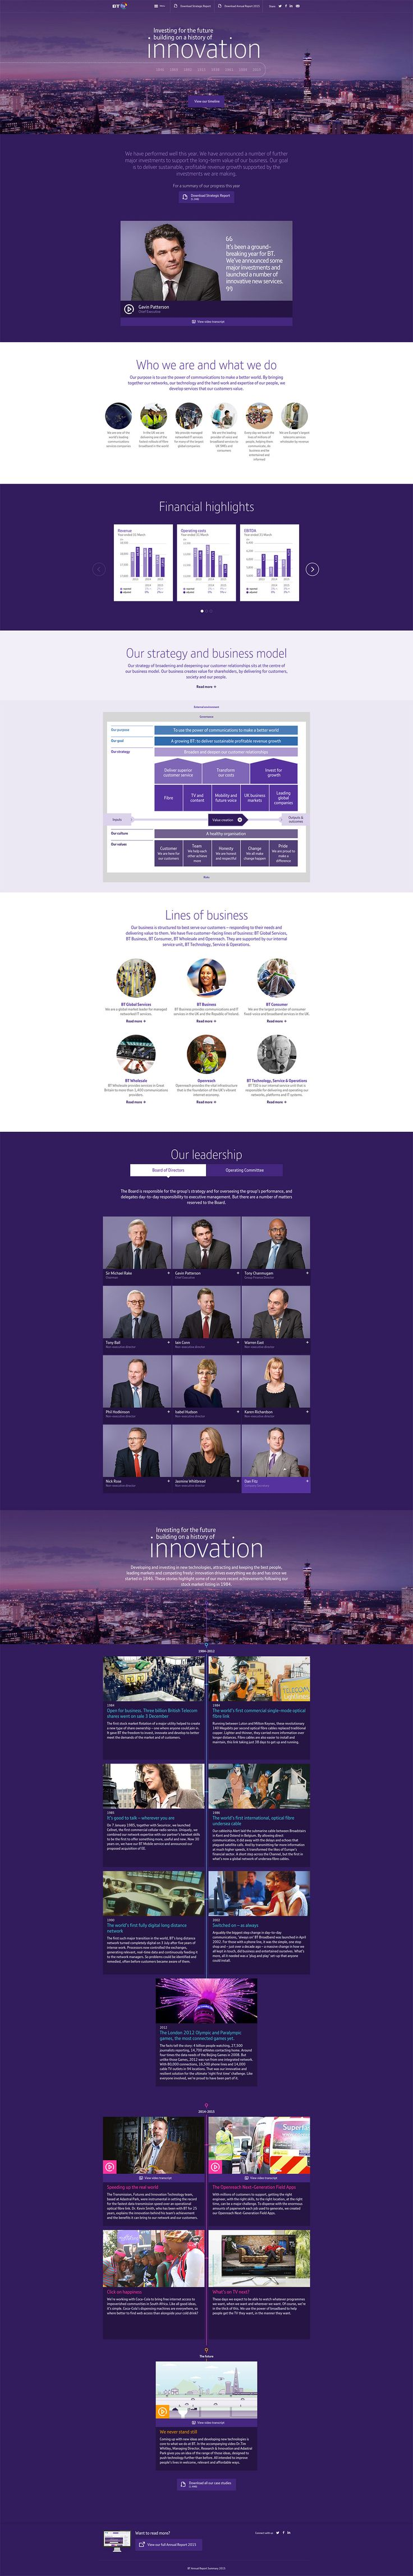 Slick annual report One Pager for 'BT' featuring professional imagery of the leadership team and financial infographics.